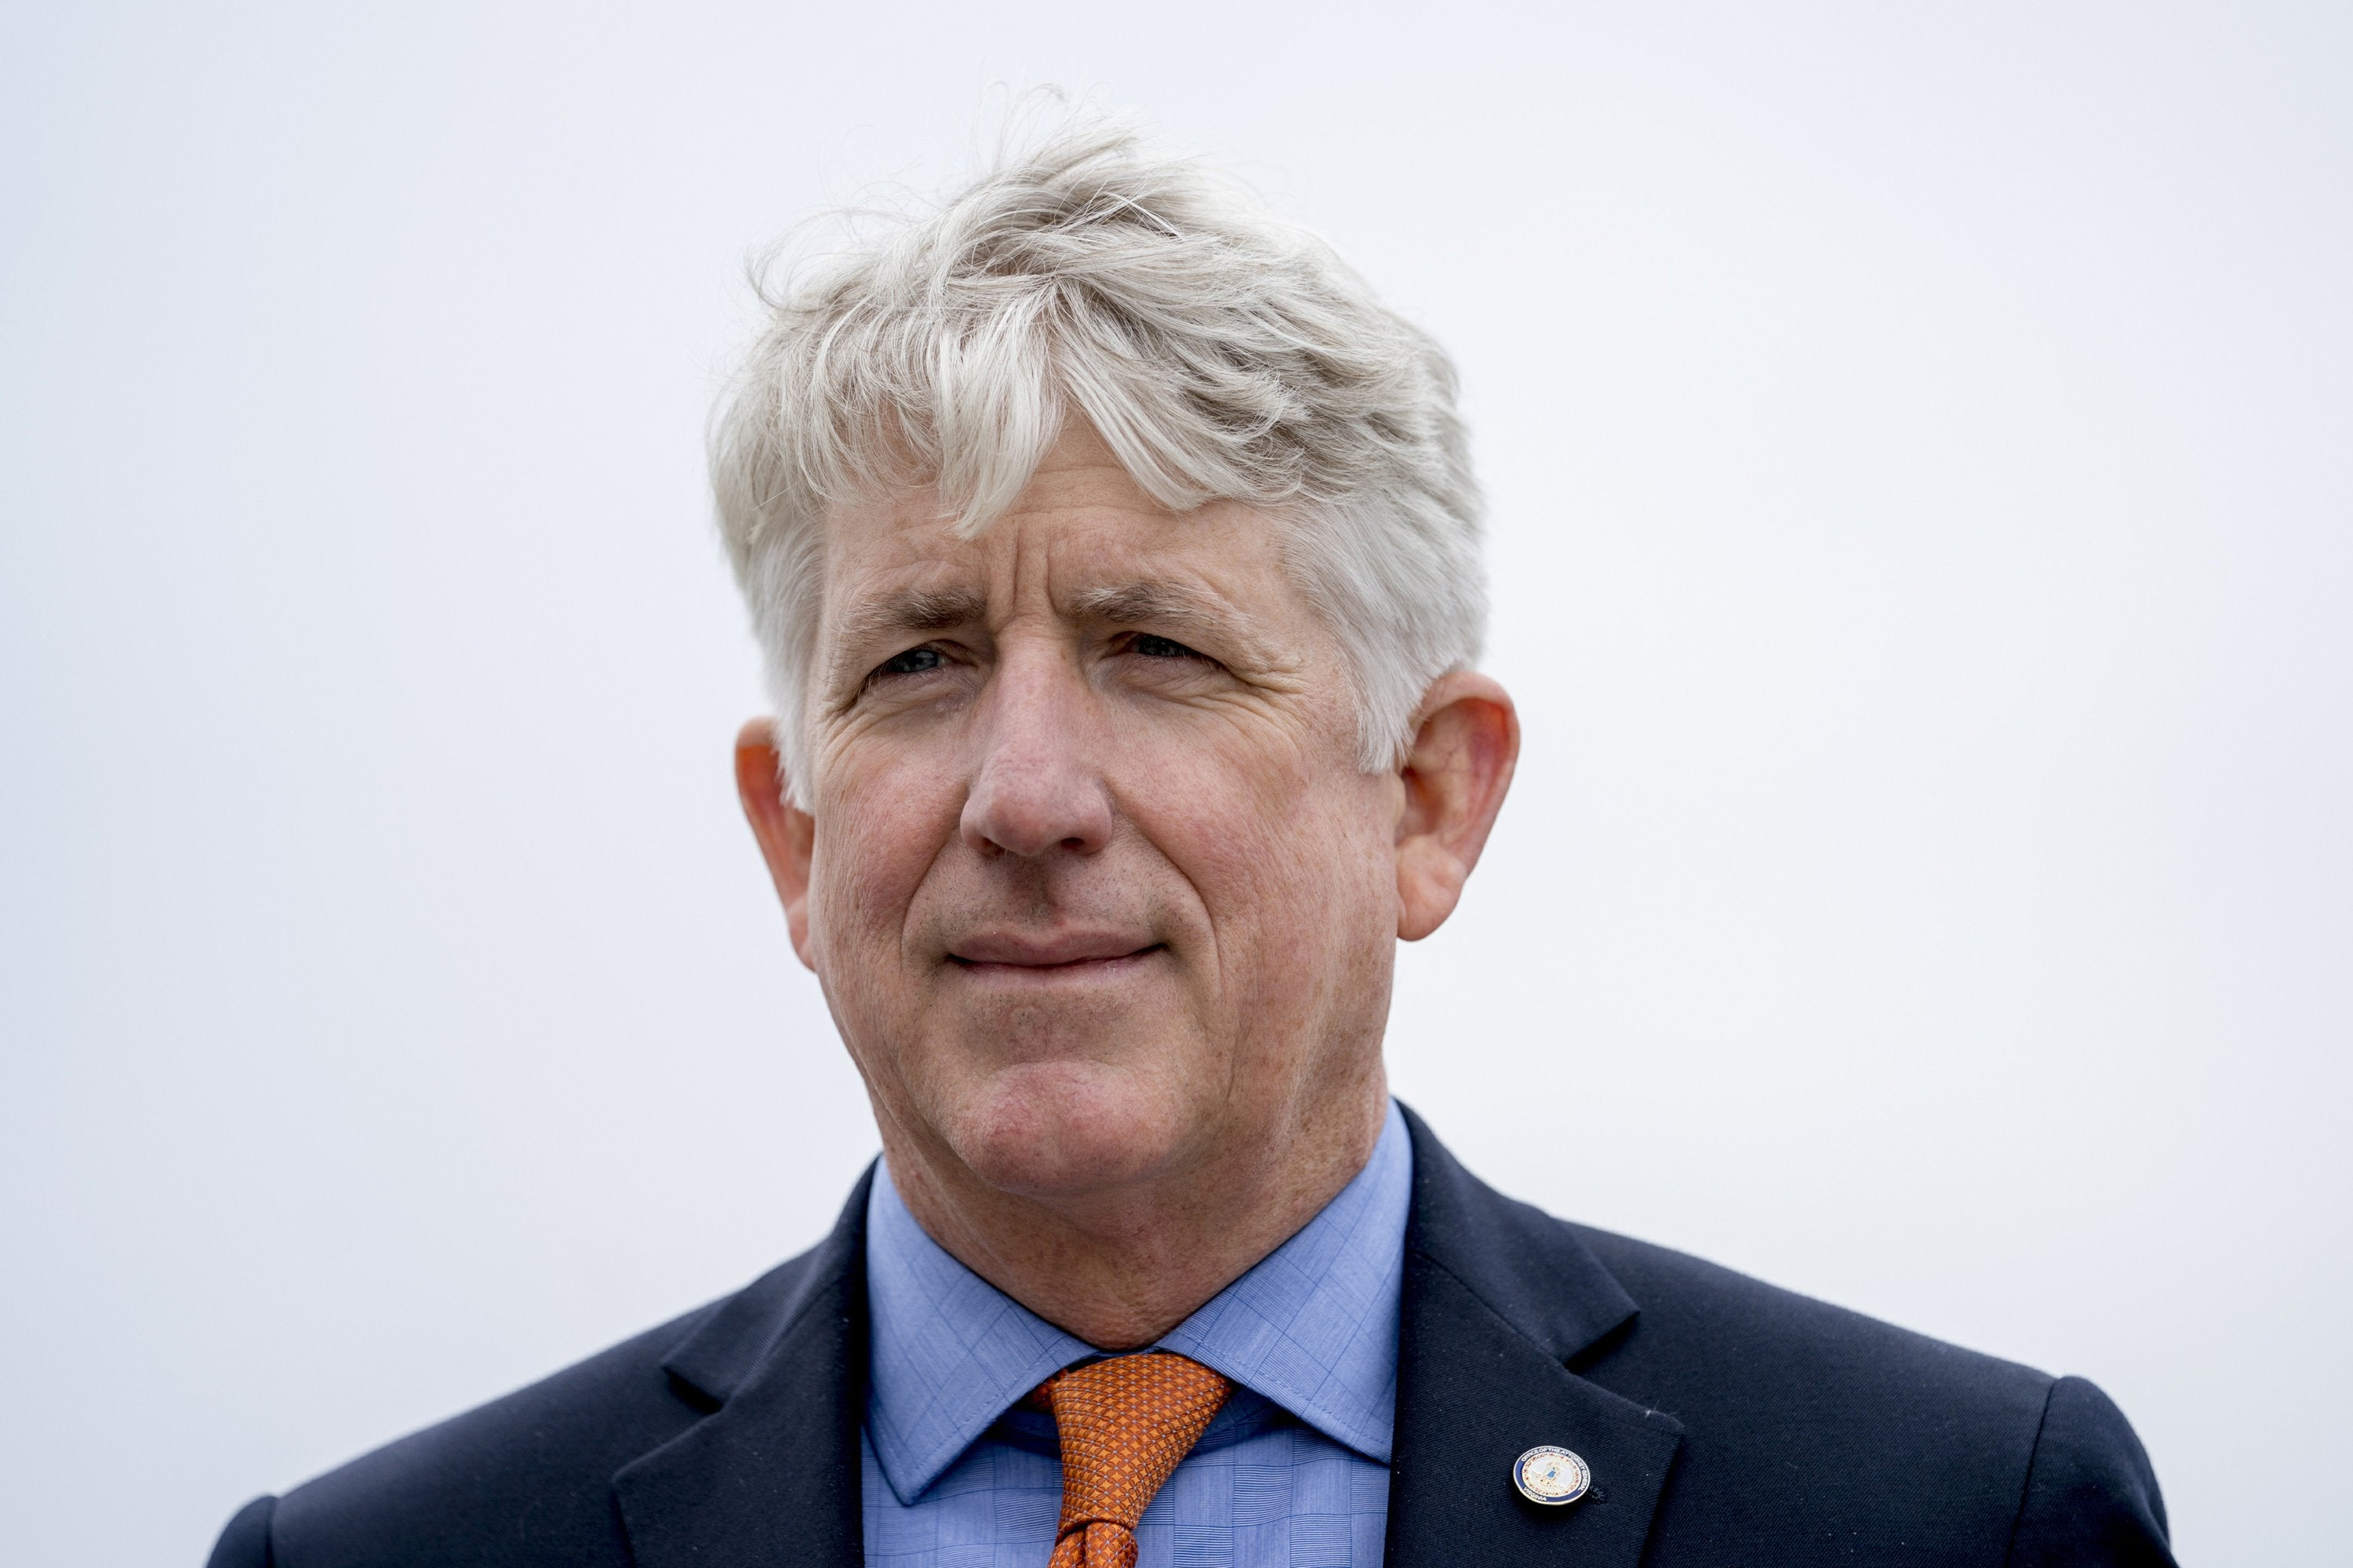 Virginia AG calls for state to legalize marijuana: Herring said Saturday that Virginia should start decriminalizing possession of small amounts of marijuana and eventually legalize the drug.